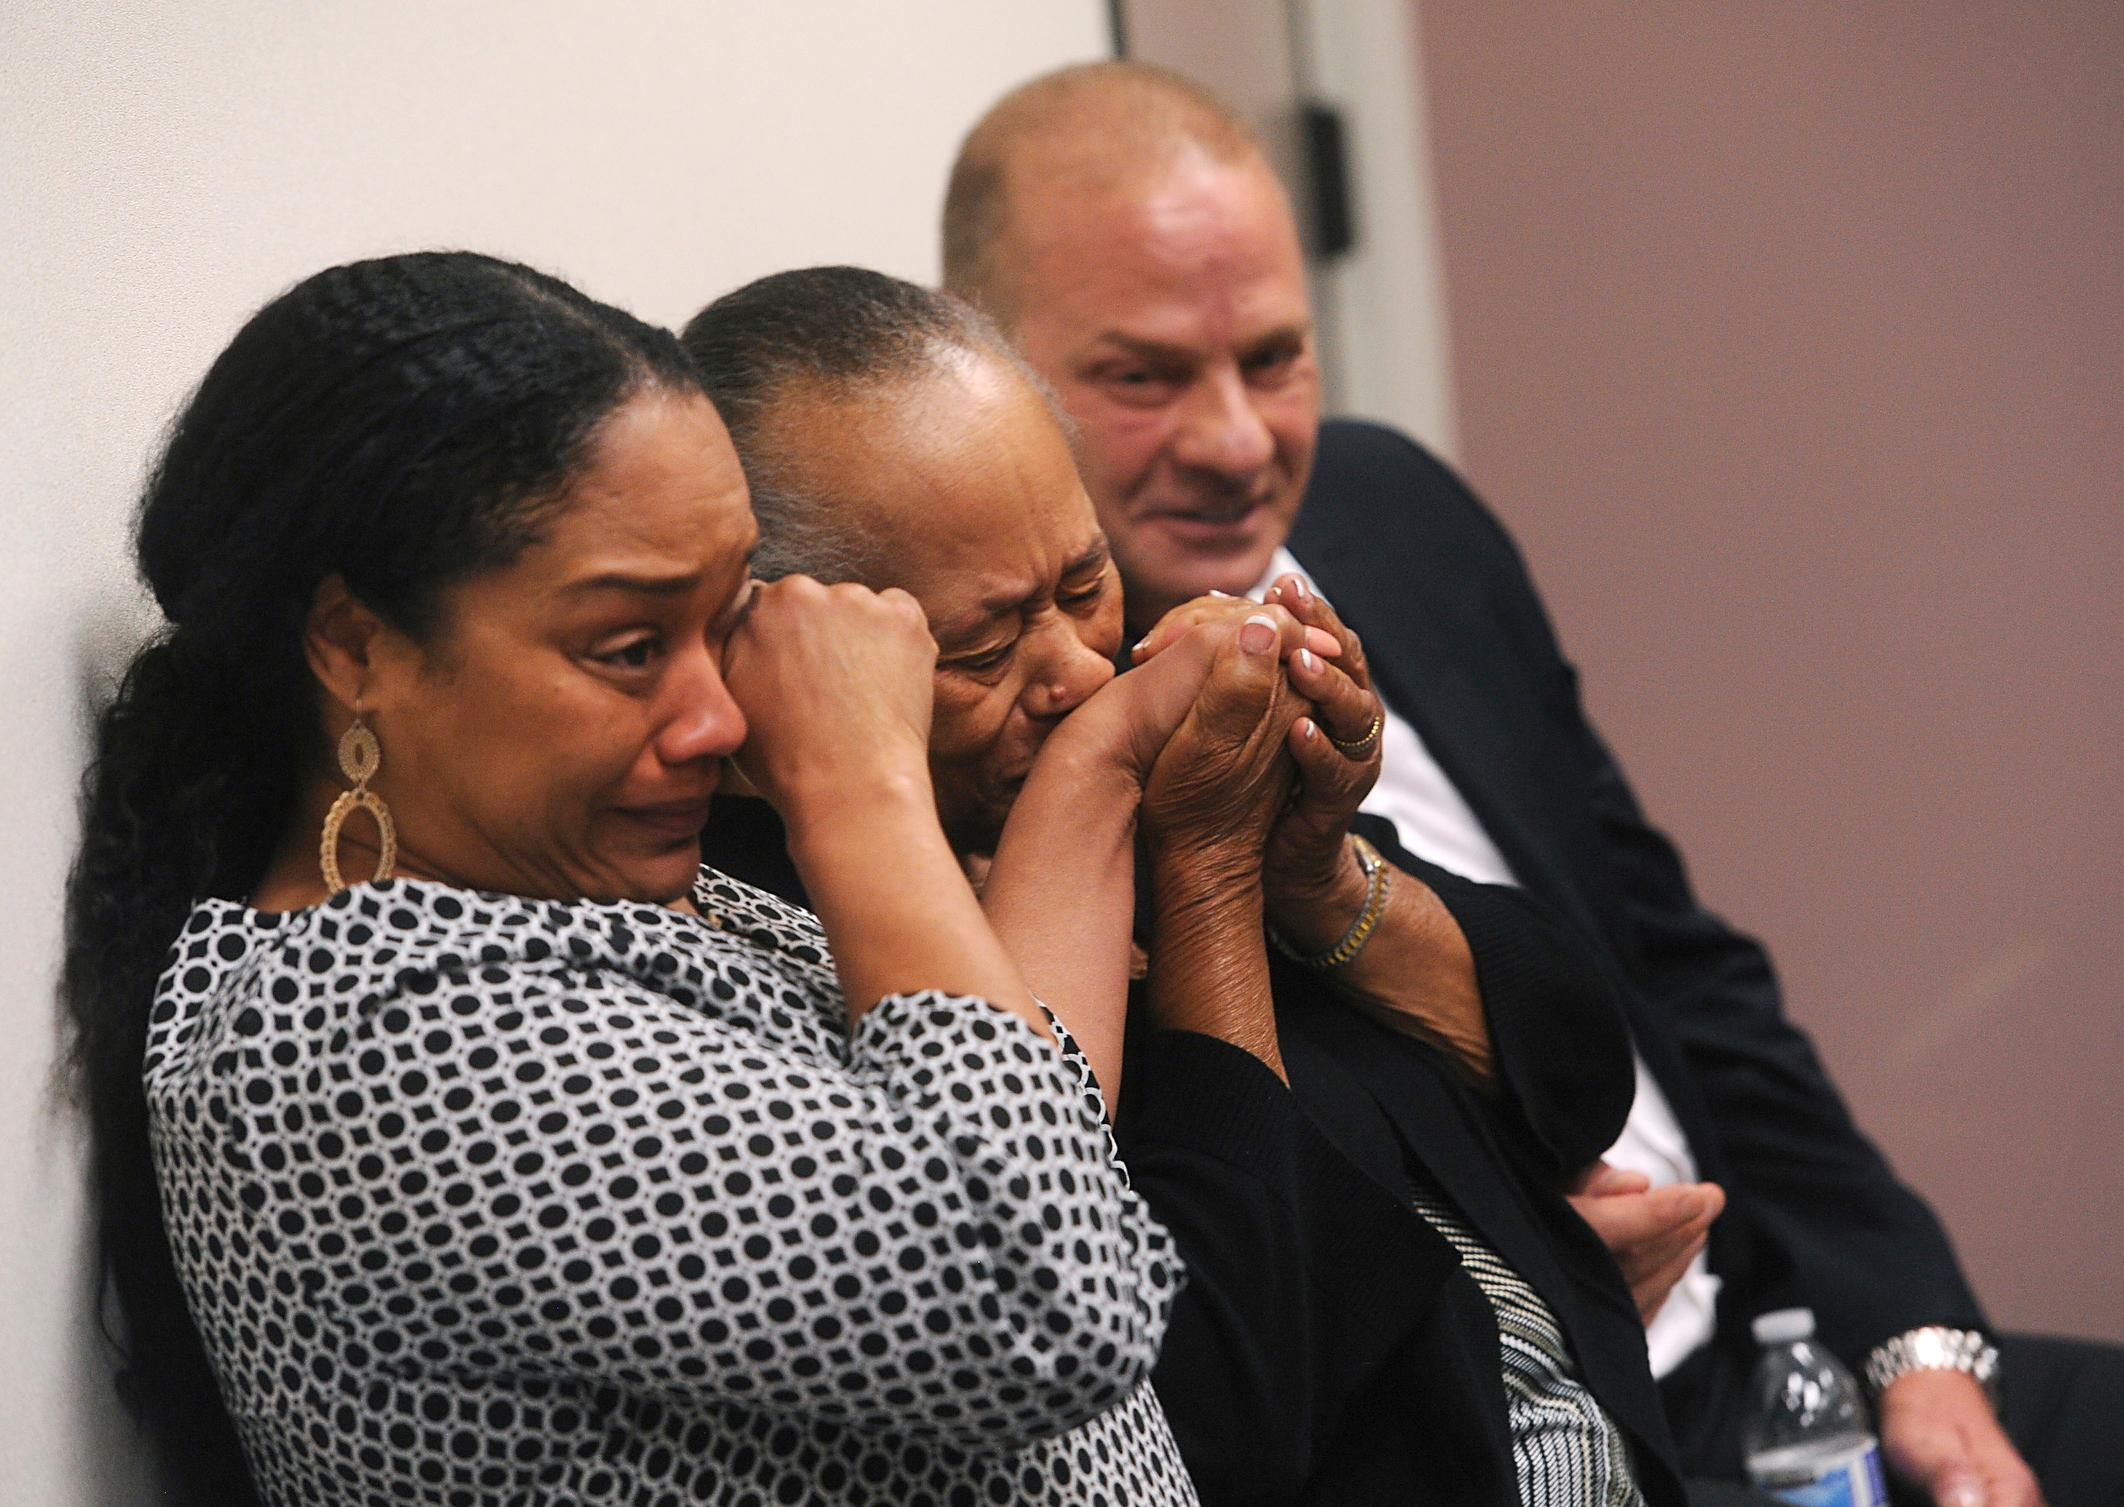 CORRECTS SPELLING FROM ARIELLE TO ARNELLE - O.J. Simpson's sister Shirley Baker, center, daughter Arnelle Simpson, left, and friend Tom Scotto react after O.J. Simpson was granted parole at Lovelock Correctional Center in Lovelock, Nev., on Thursday, July 20, 2017.  Simpson was convicted in 2008 of enlisting some men he barely knew, including two who had guns, to retrieve from two sports collectibles sellers some items that Simpson said were stolen from him a decade earlier.   (Jason Bean/The Reno Gazette-Journal via AP, Pool)